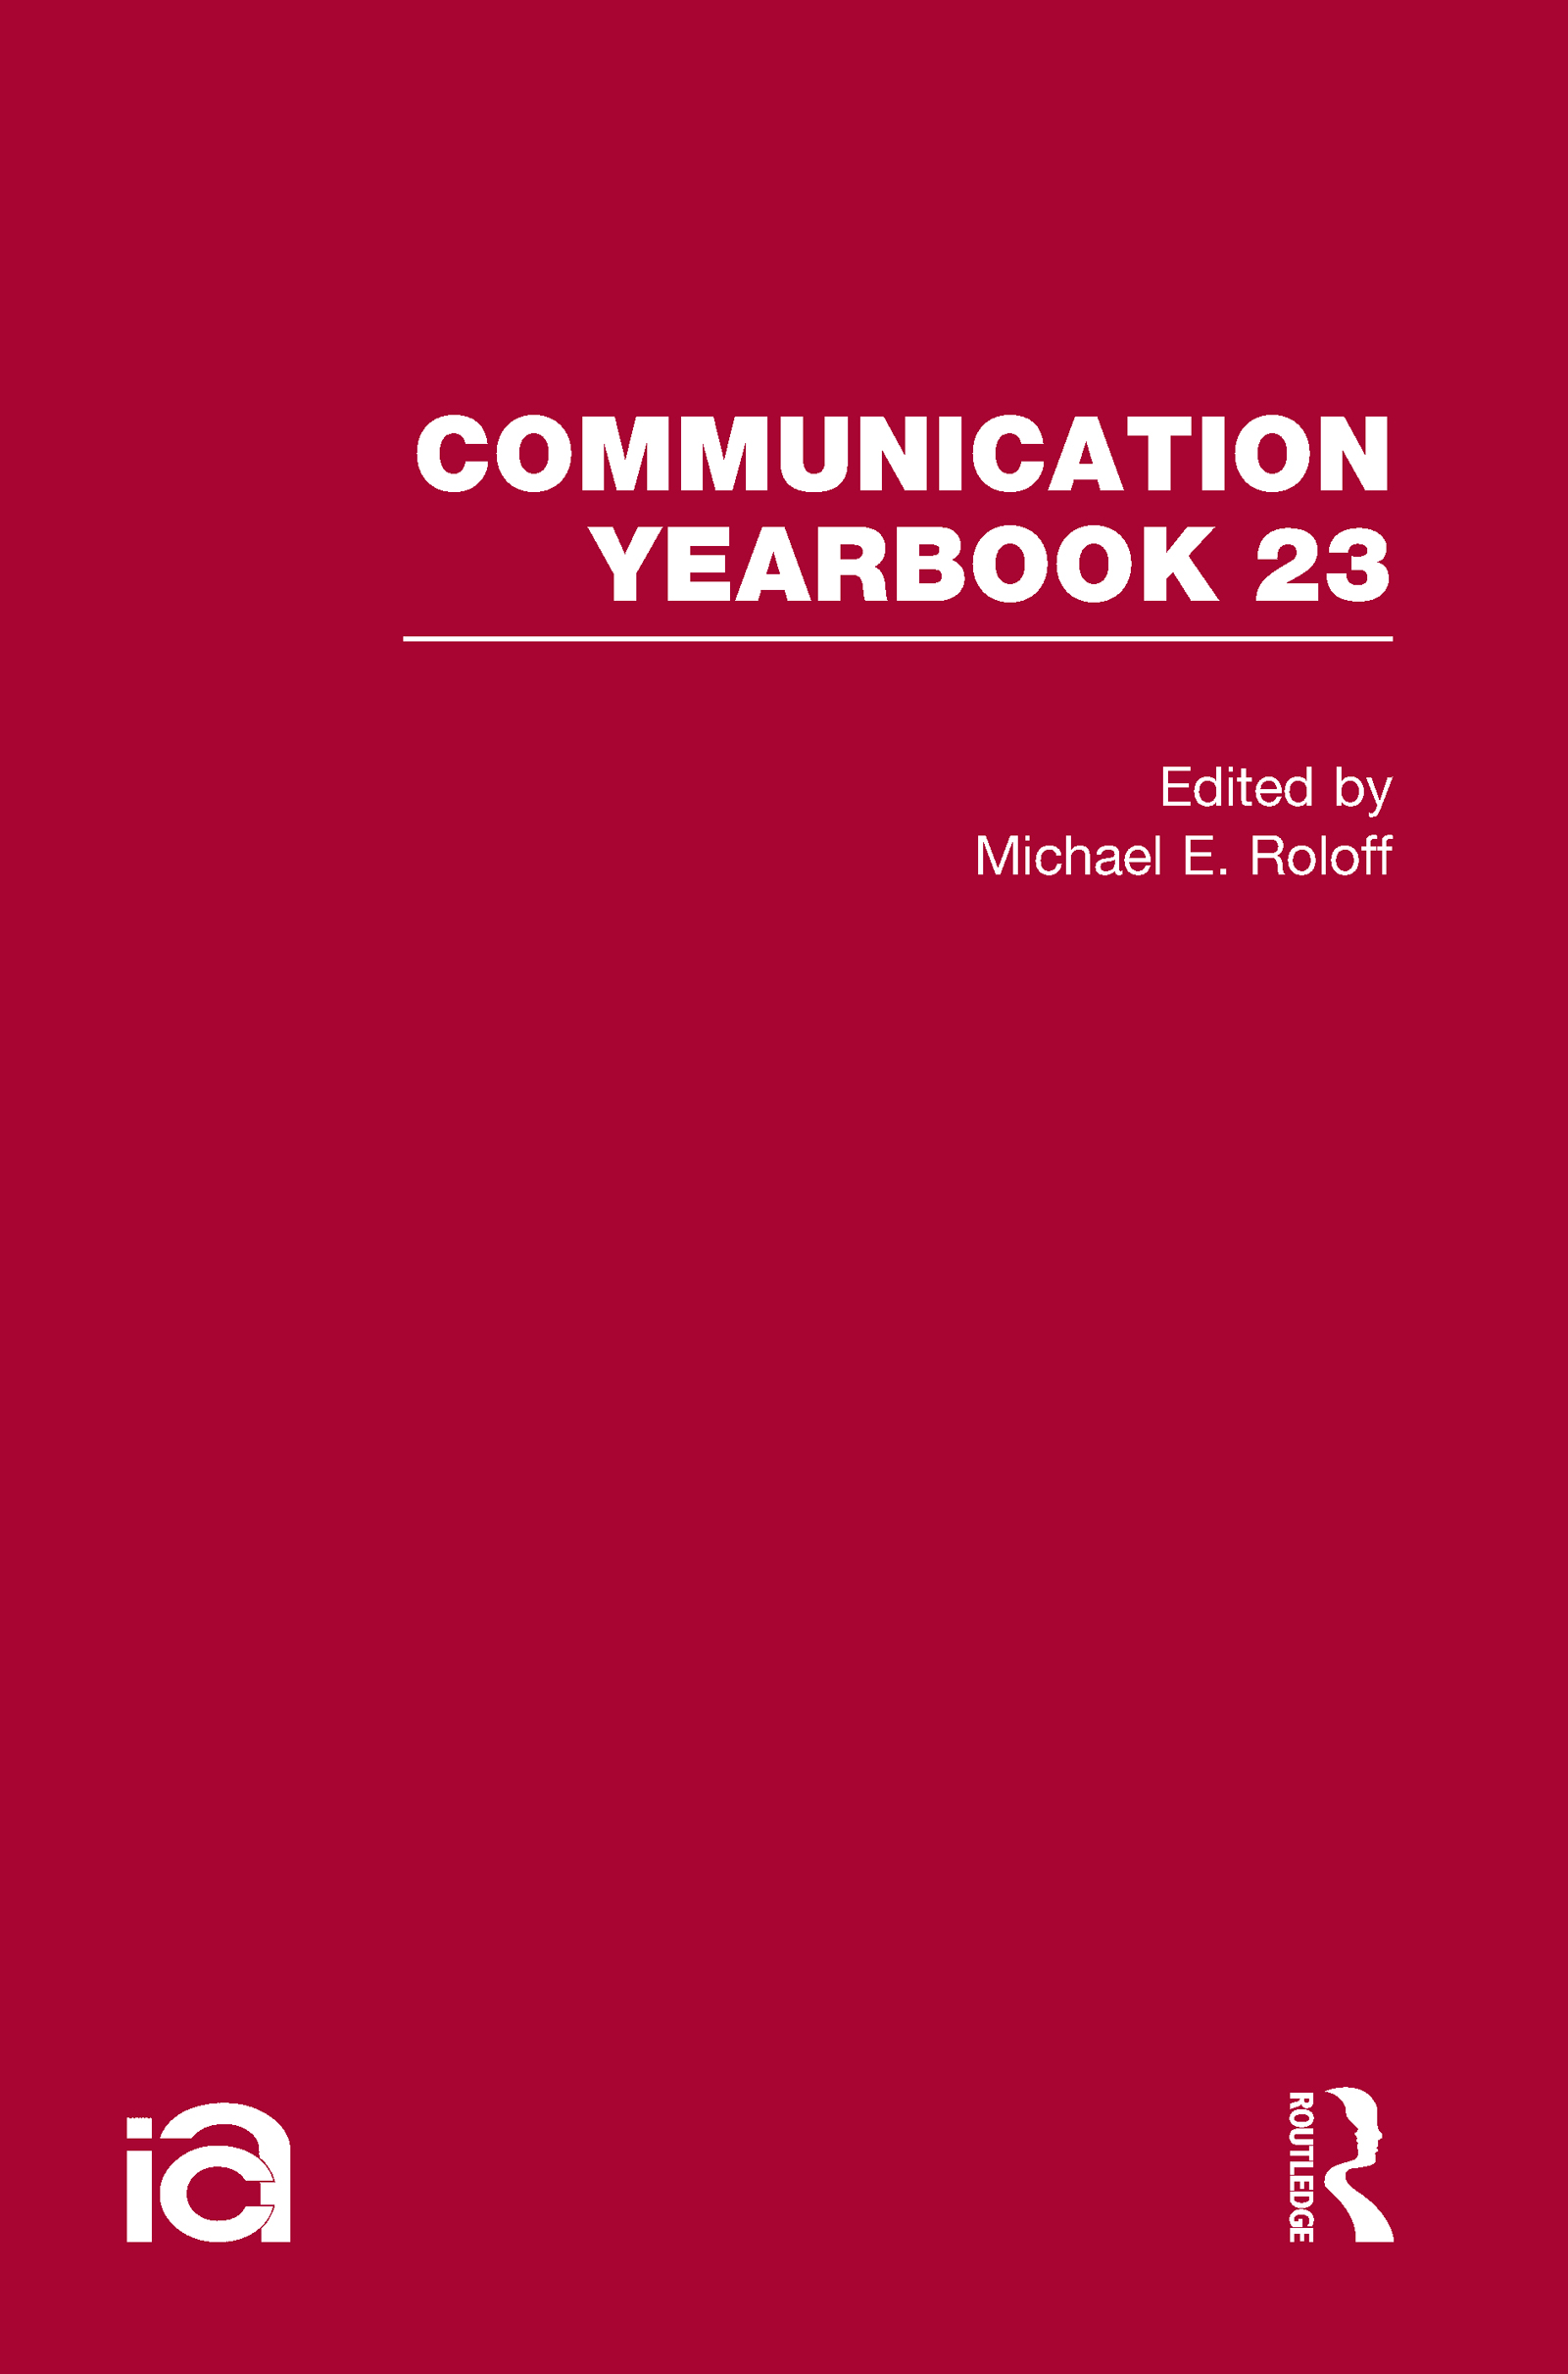 Communication Yearbook 23